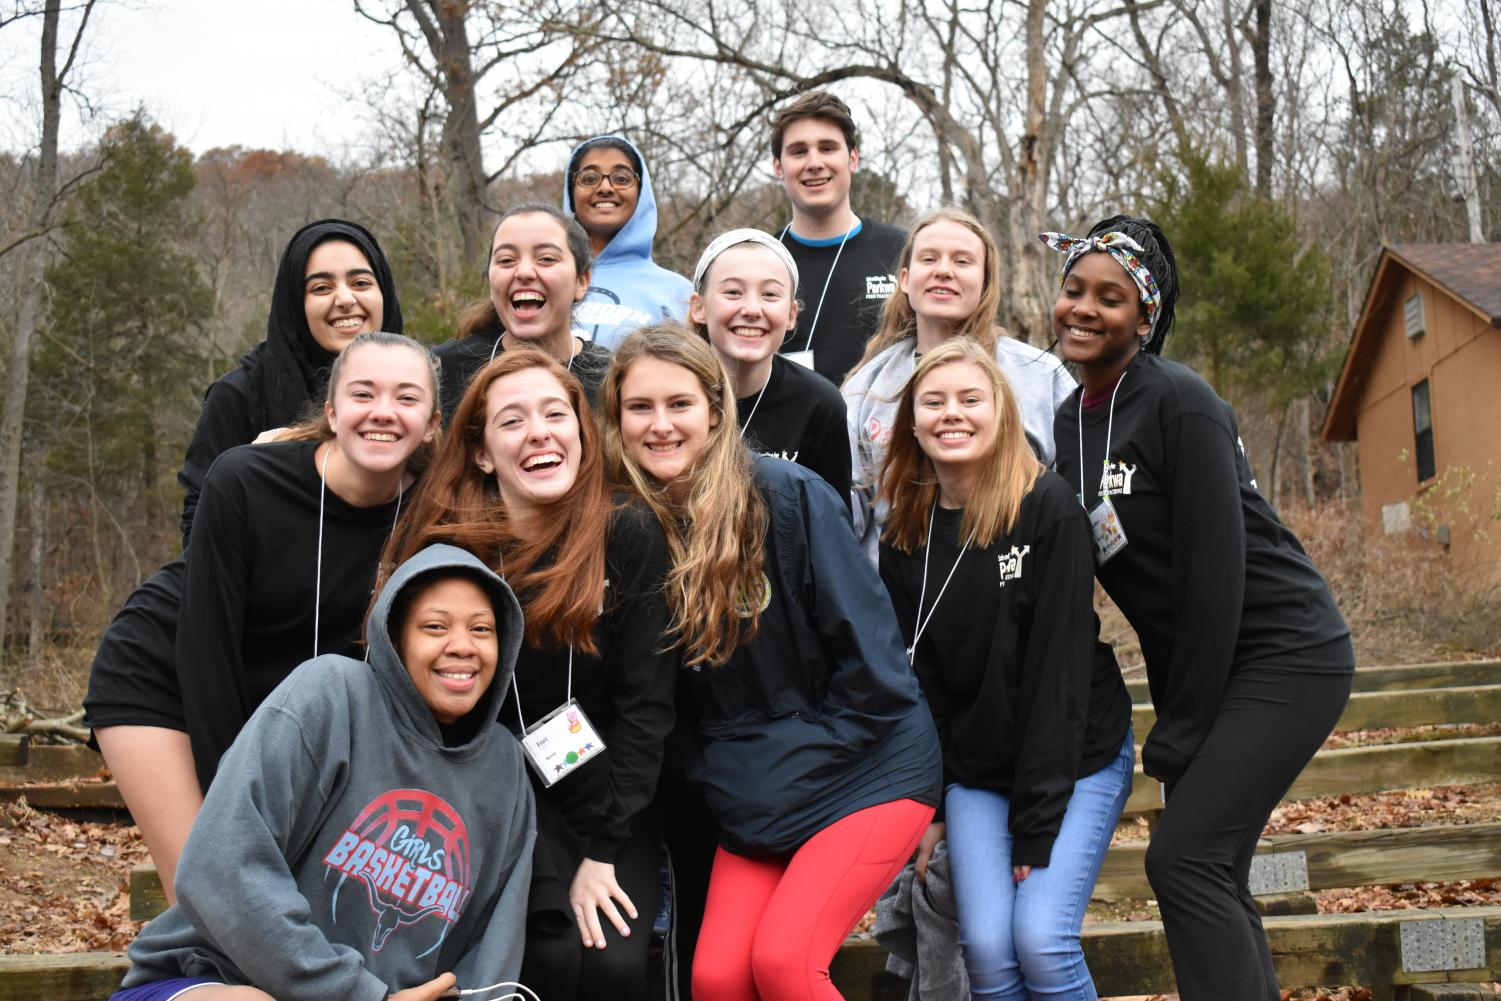 """Peer Teachers pose for a group photo at the Camp Wyman. Juniors and seniors participated in interactive group activities to strengthen knowledge of maintaining a drug-free life. """"The retreat changed my perspective on life a lot. I understand that I play an important role in making the world a better place, as everyone should,"""" senior Ryan Egan said."""